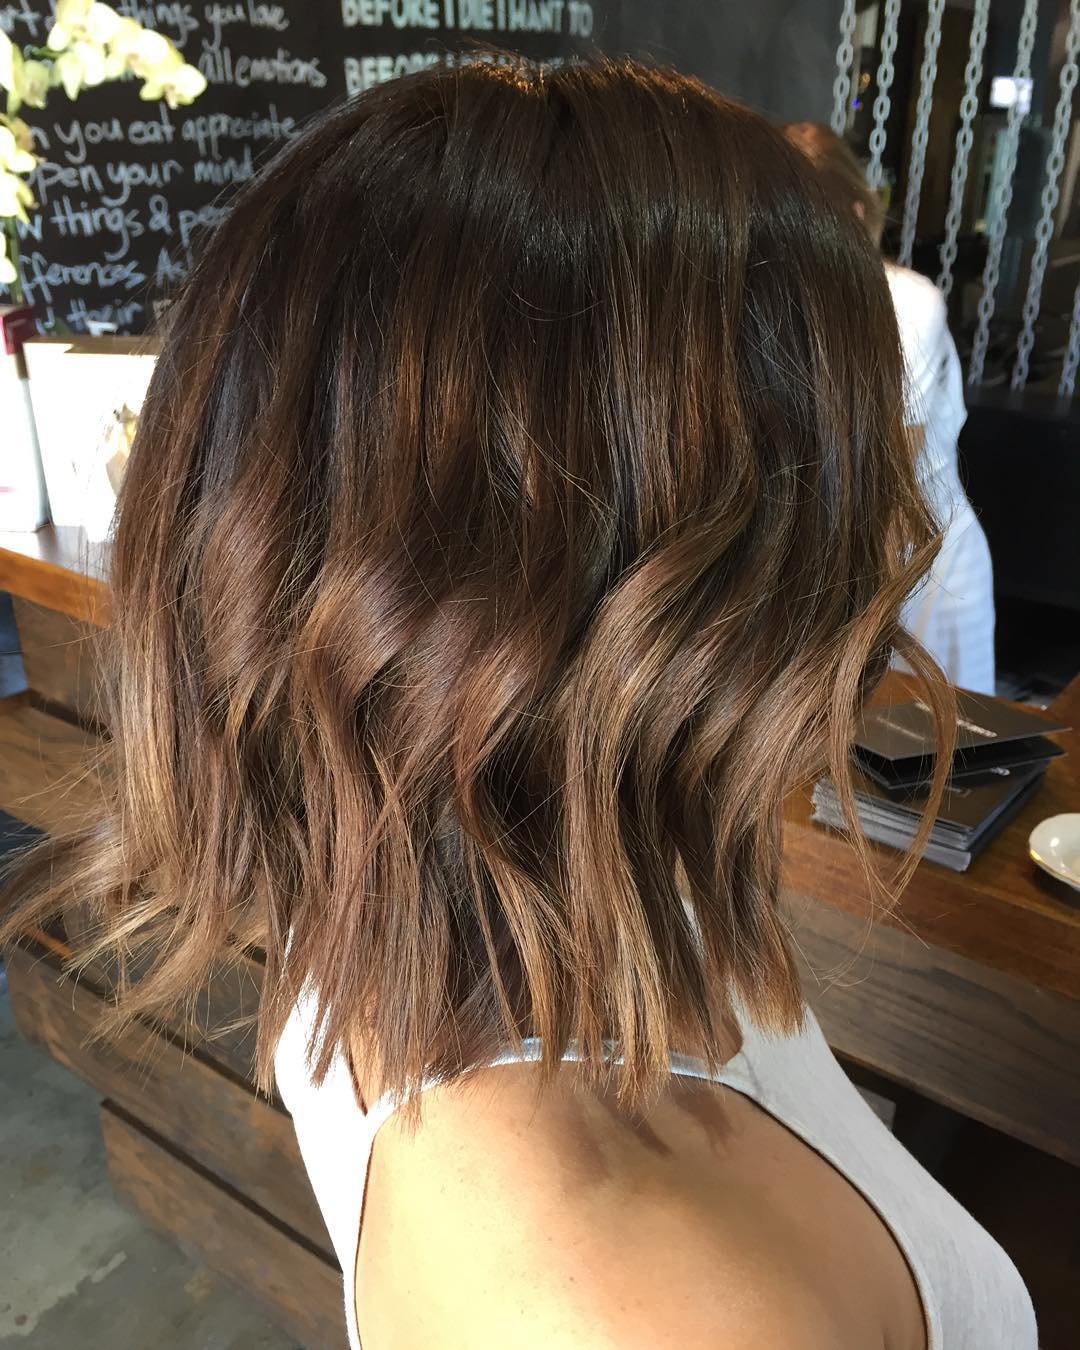 Choppy Textured Golden Brown Balayage Bob